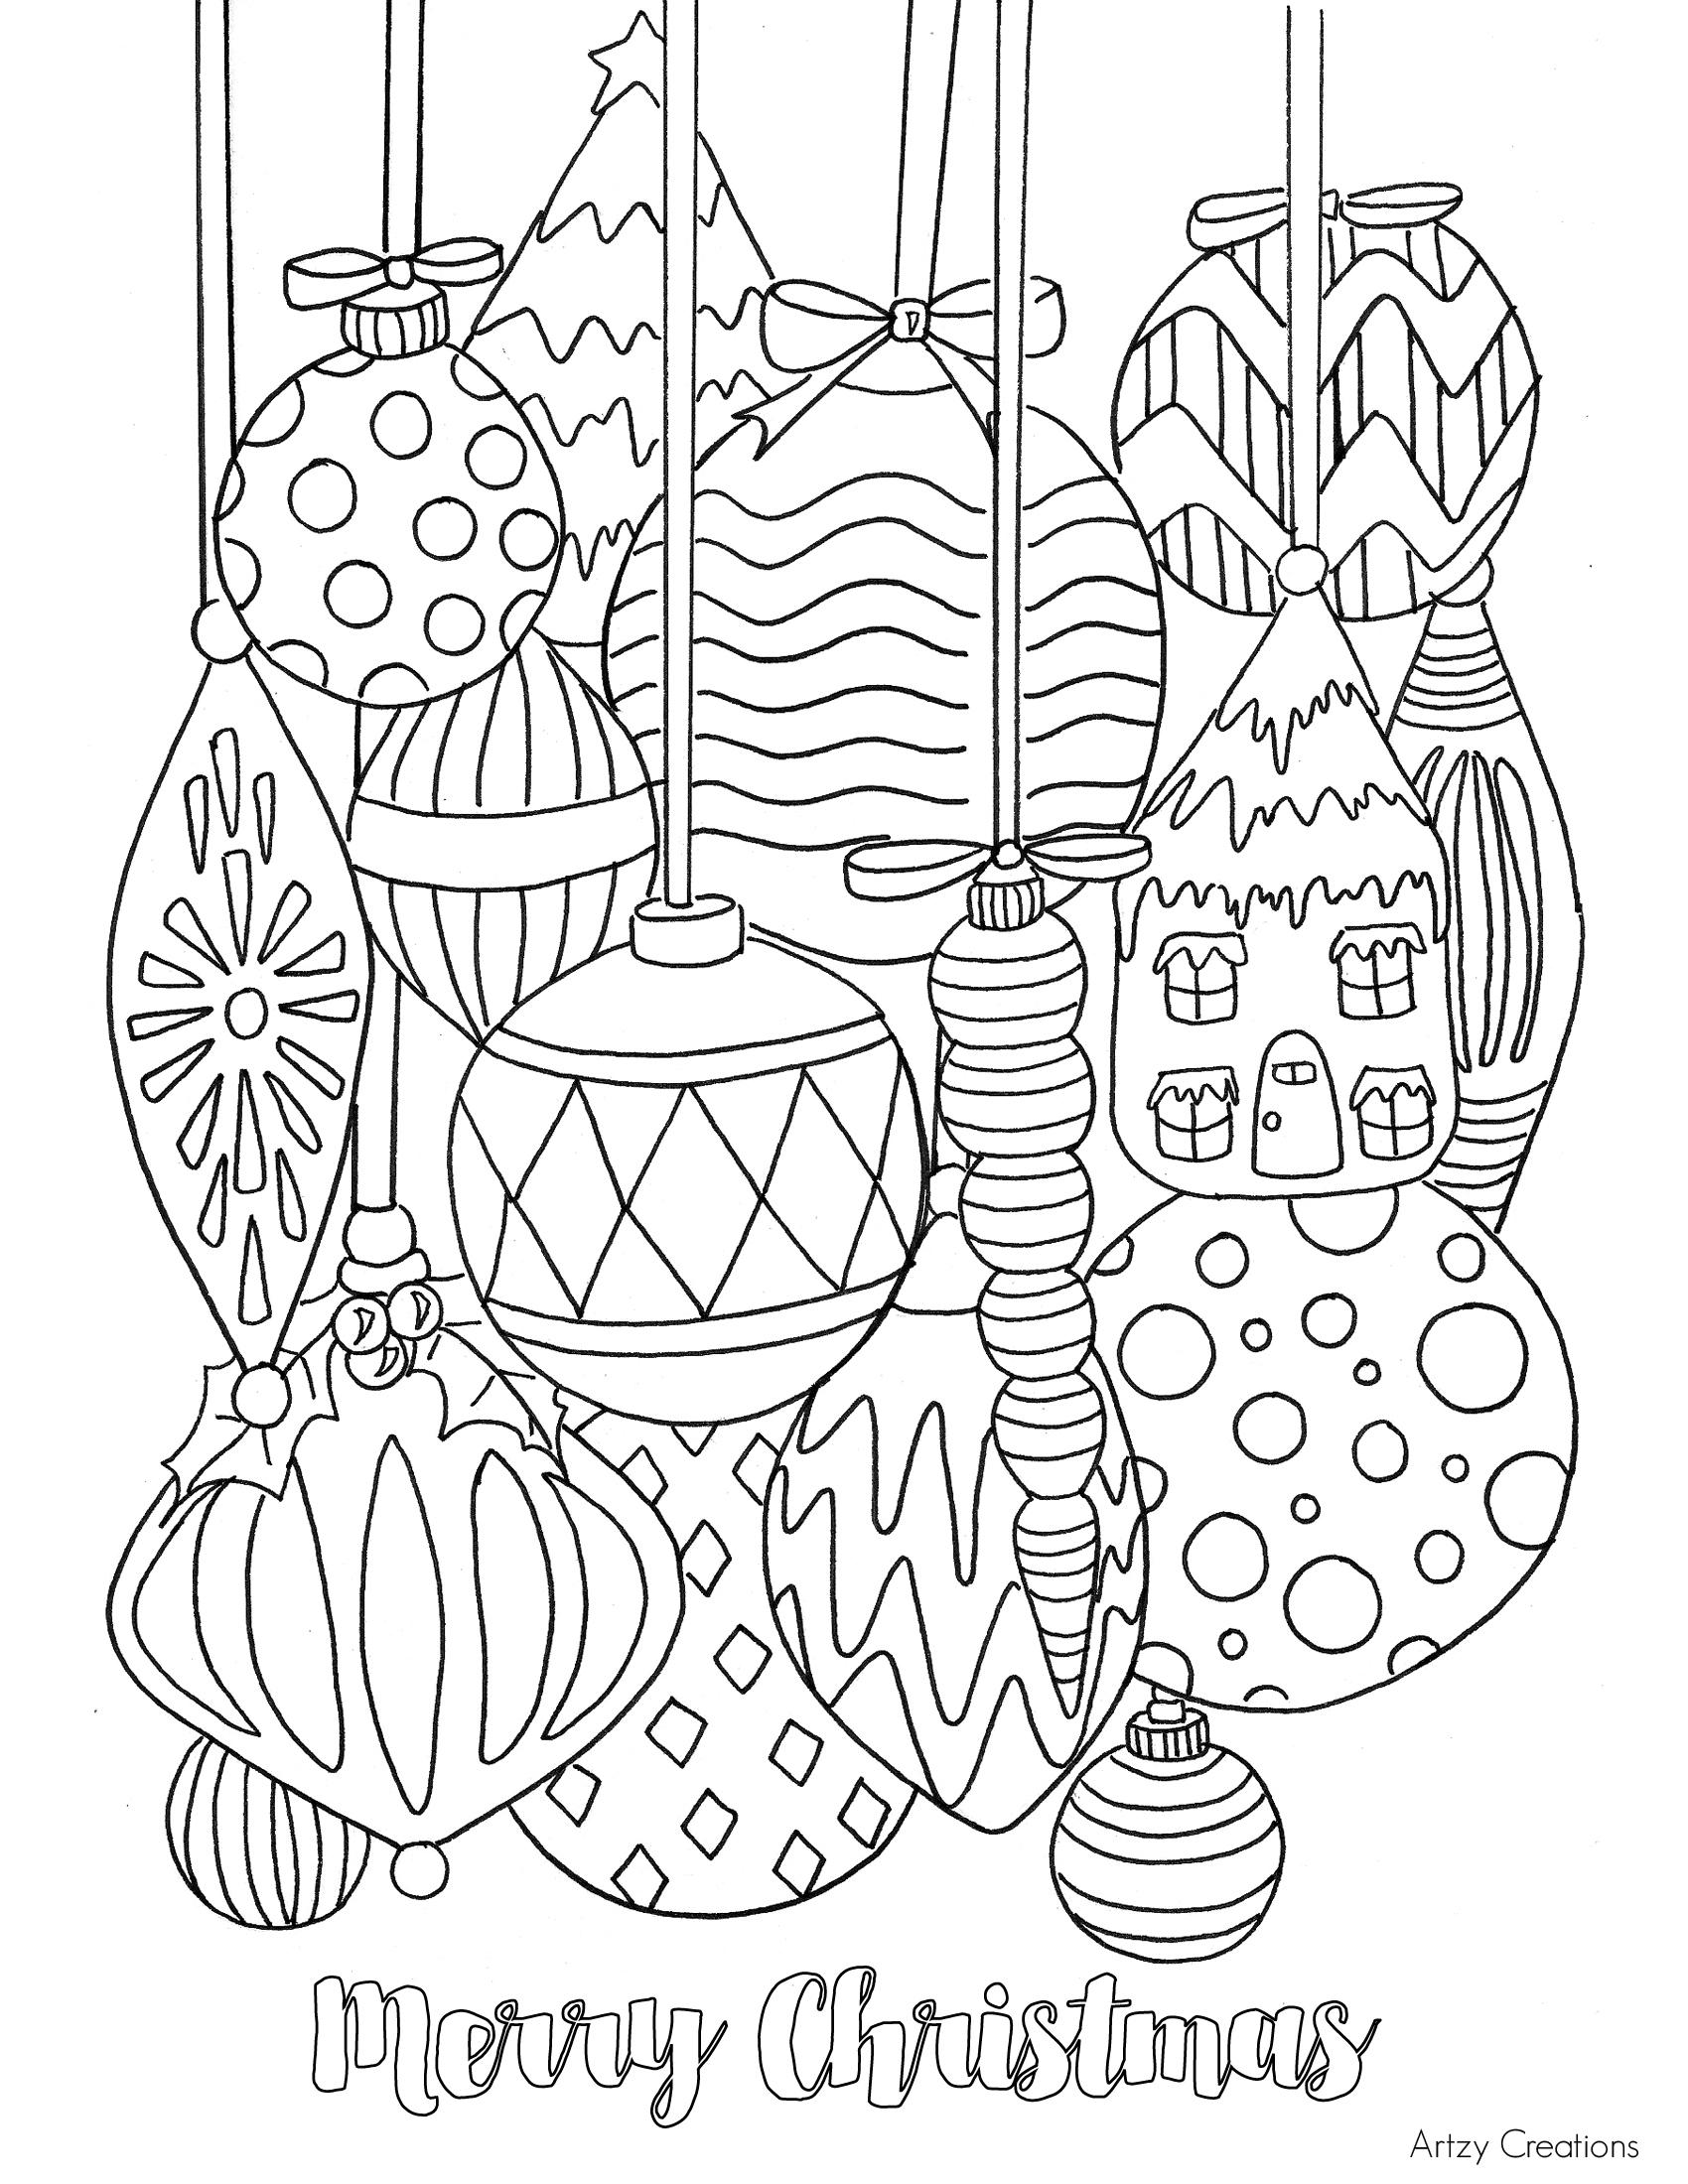 Christmas Coloring Pictures For Adults With Free Pages Gallery Books